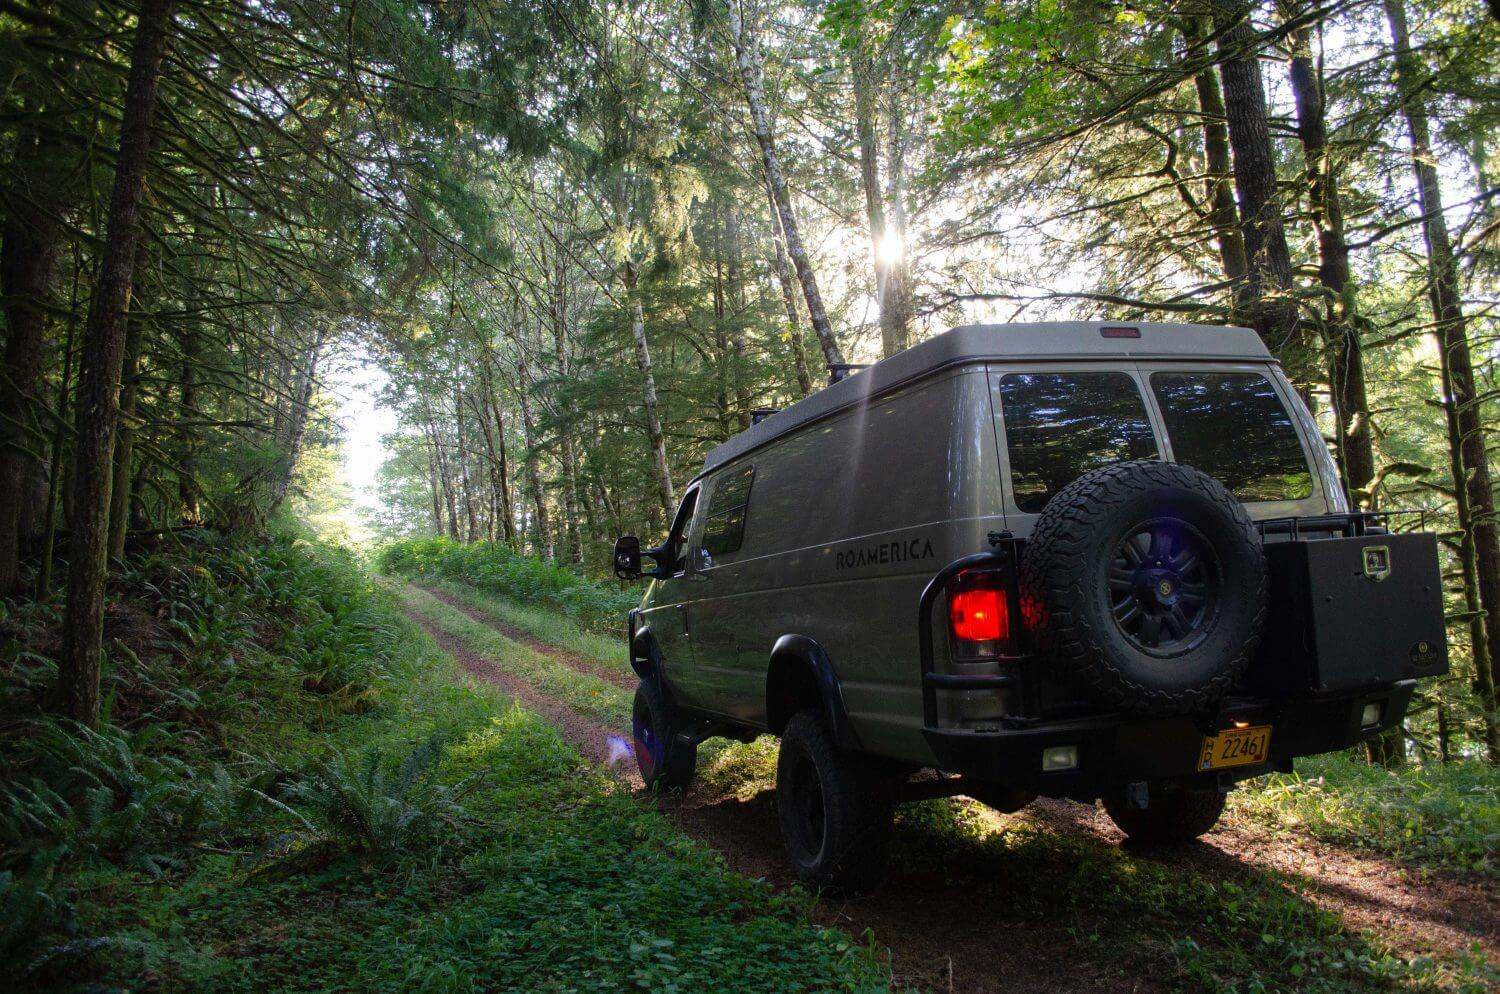 Campervan Road Trip through Oregon Forest